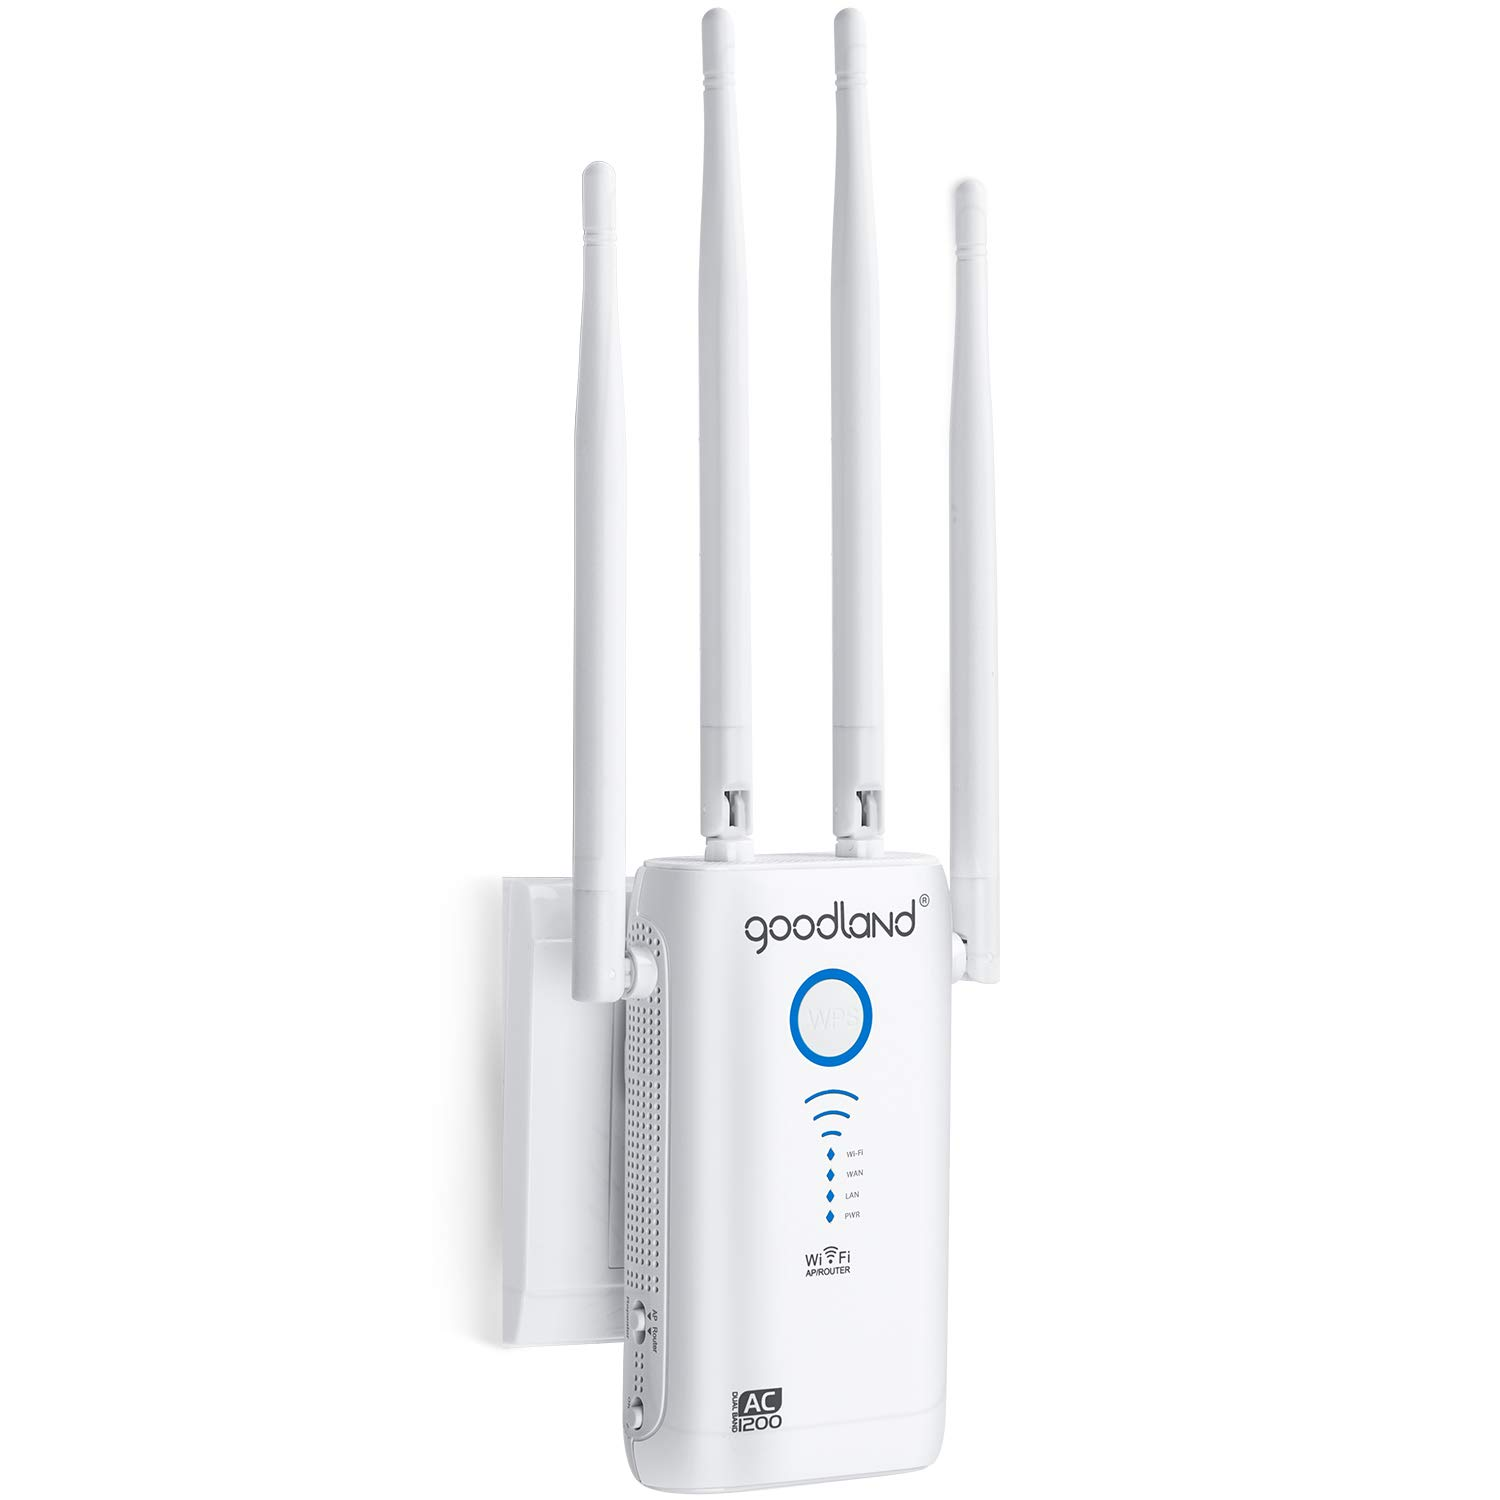 Goodland AC1200 WiFi Range Extender - 1200Mbps 2.4/5Ghz Dual Band Wi-Fi Signal Booster - Repeater/Wireless Router/Access Point for Smart Home & Alexa Devices,Easy Setup